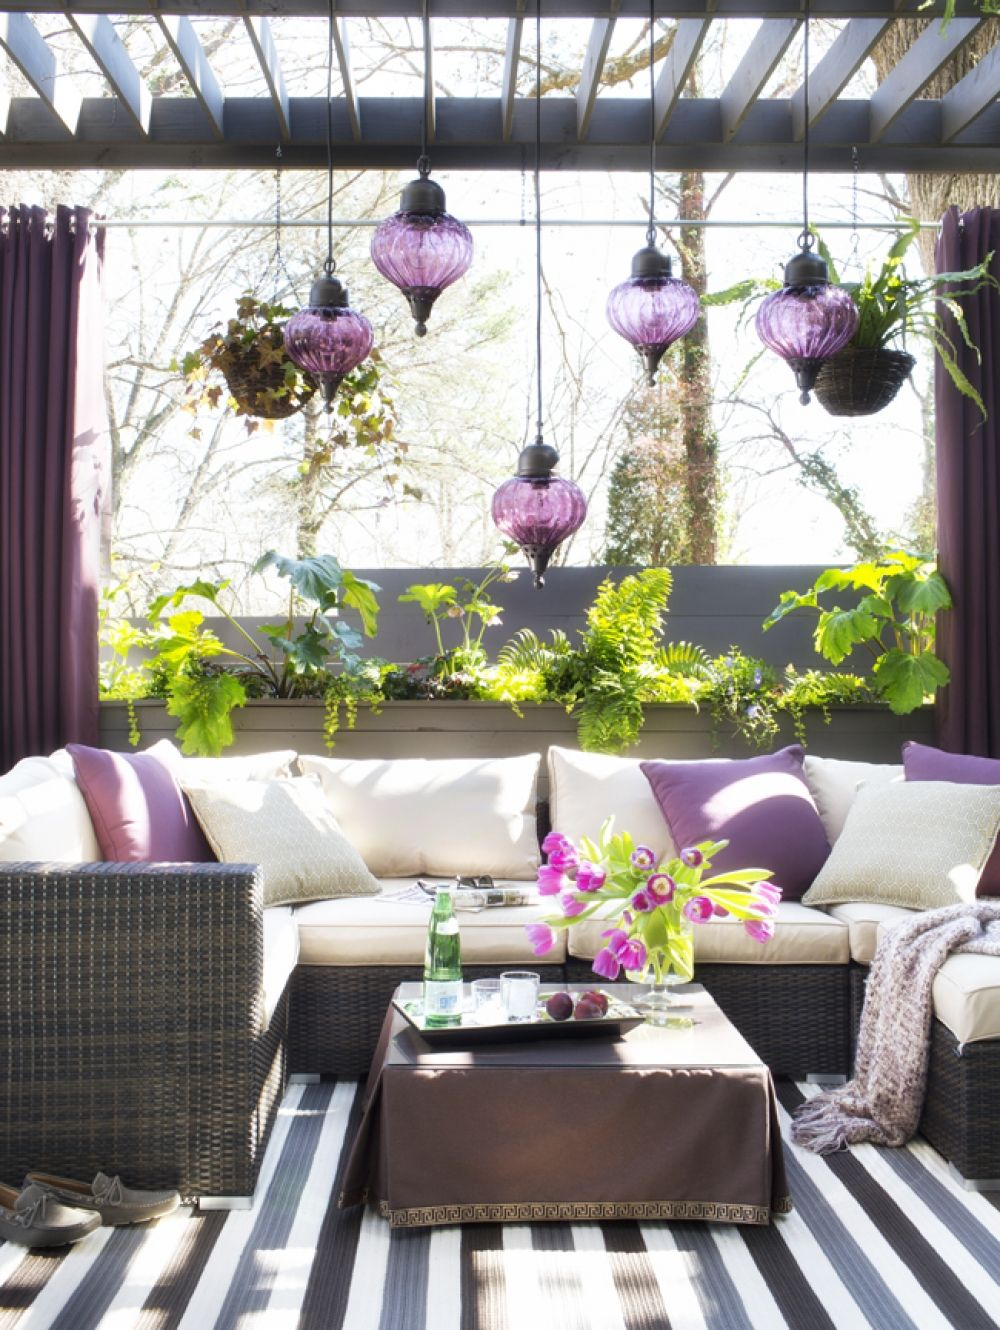 Never thought shades of purple for outdoor spaces but this is really pretty!